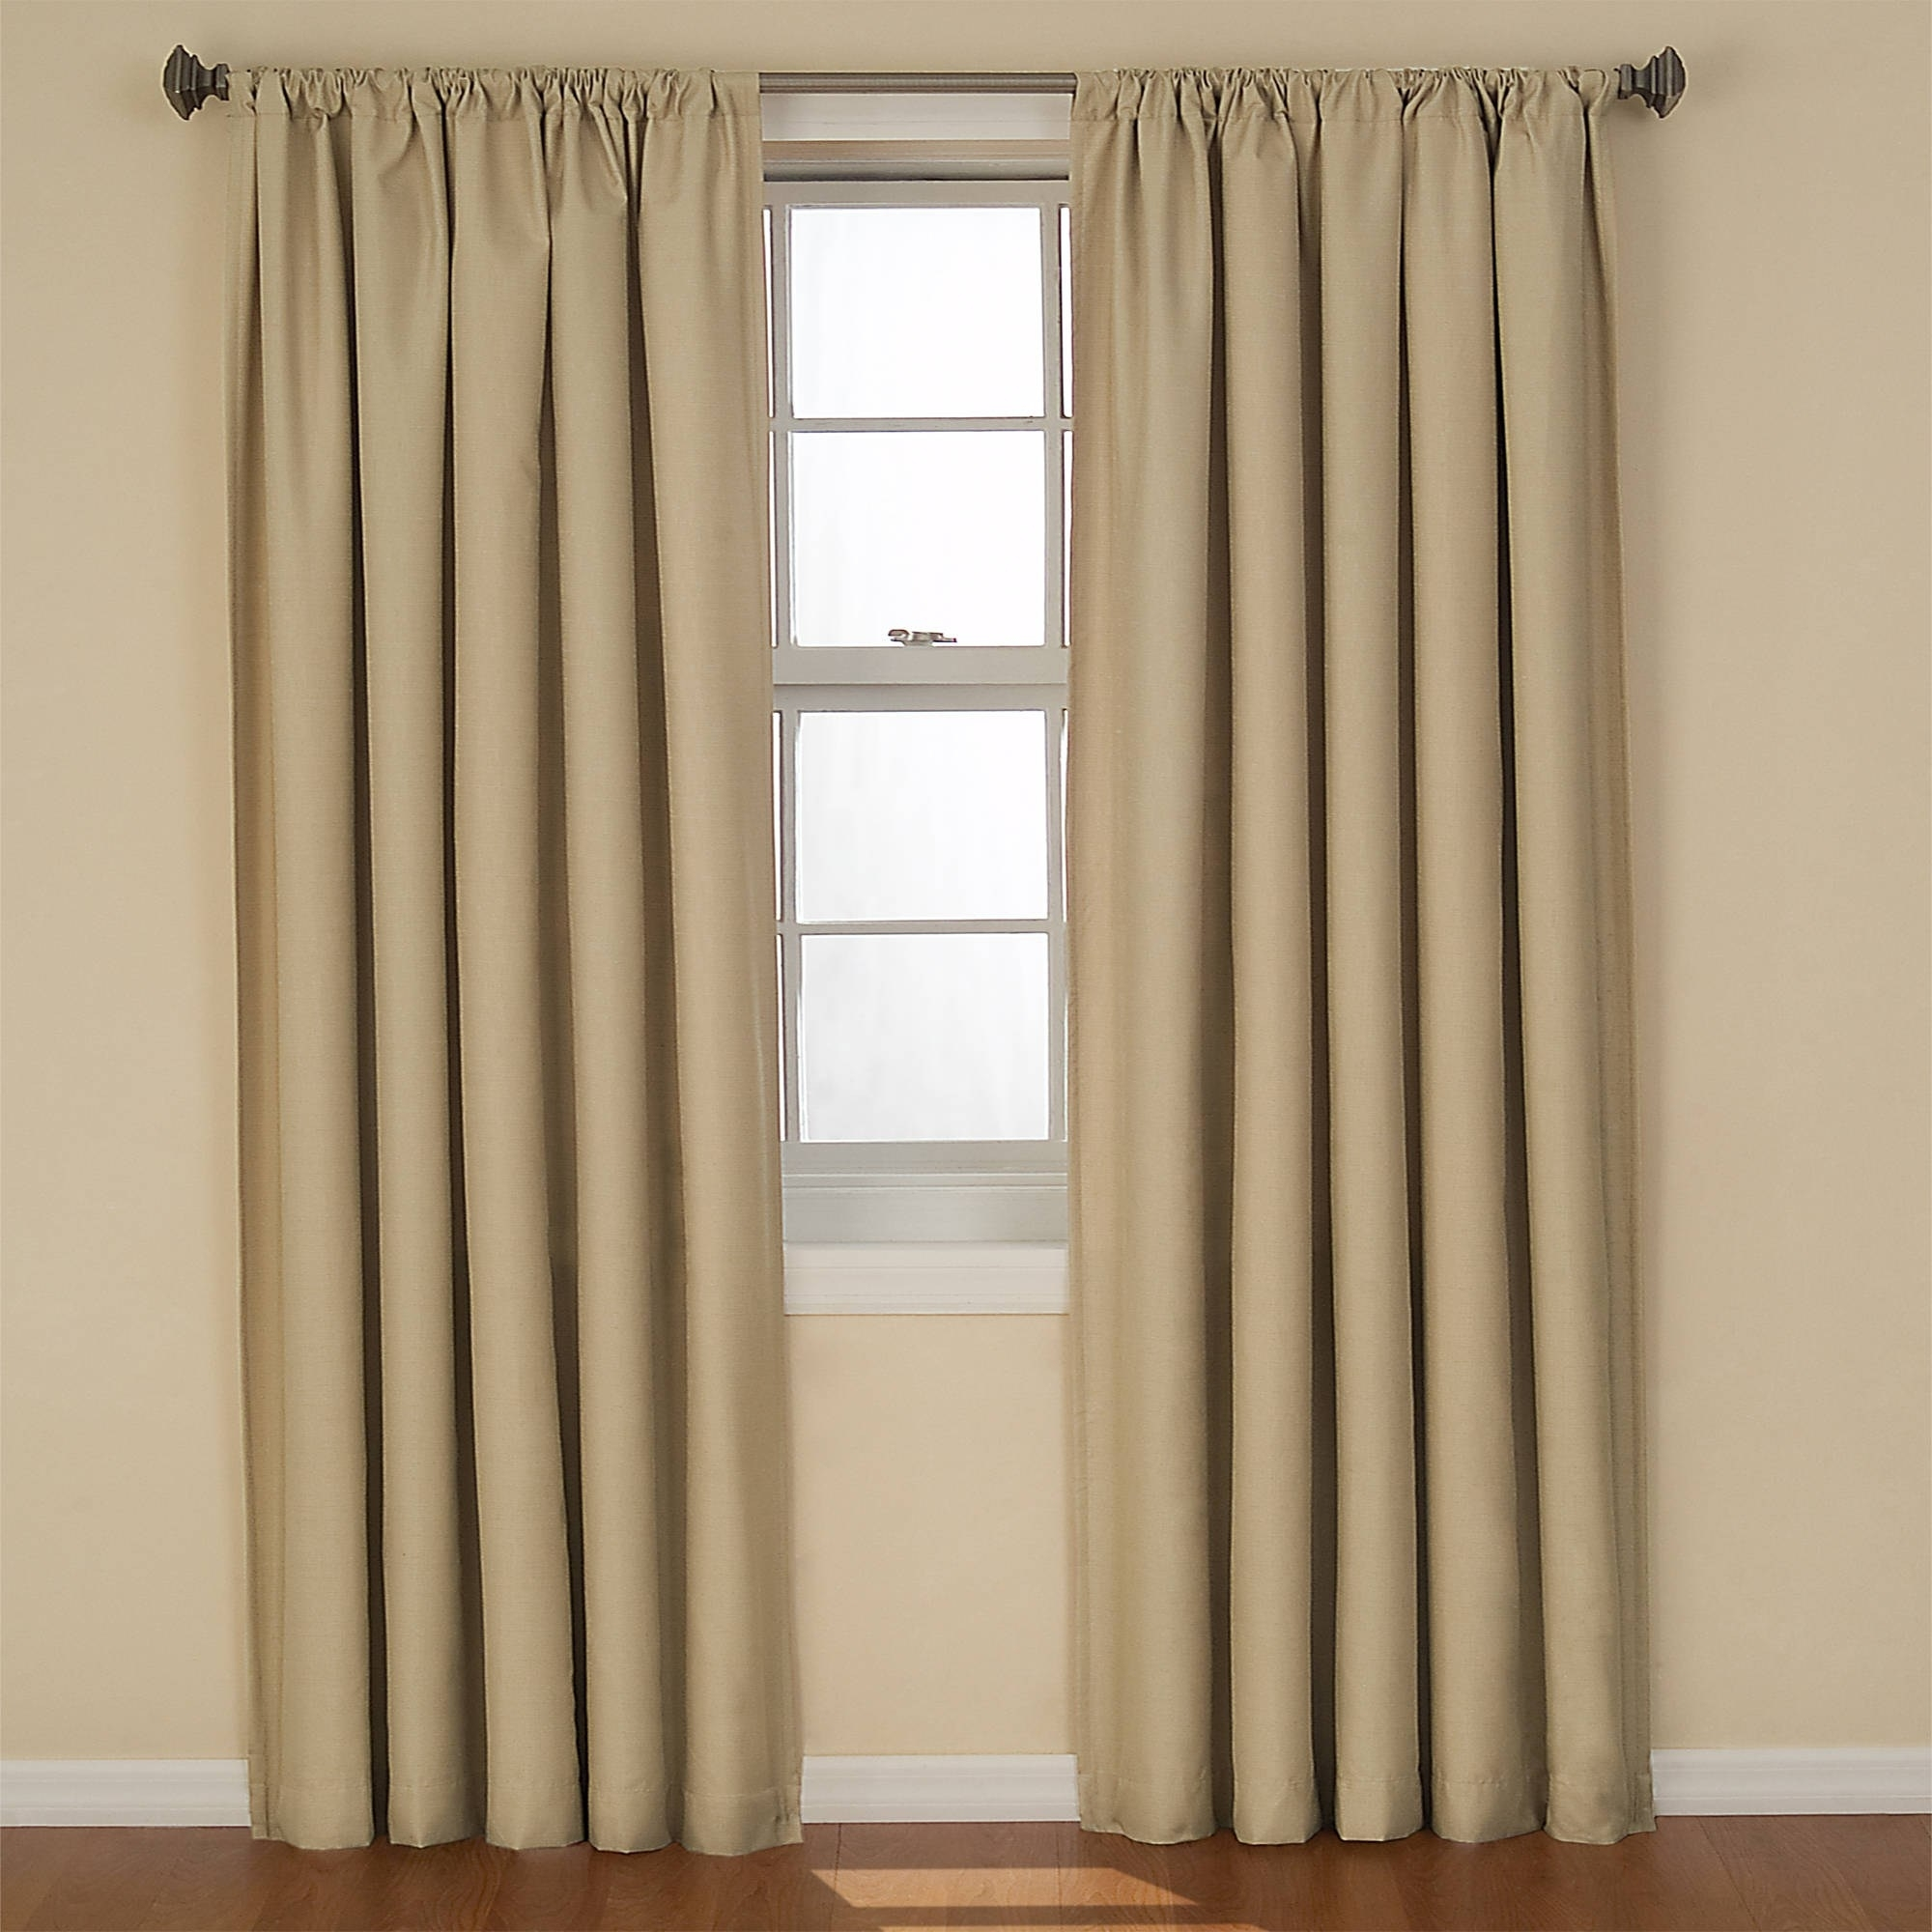 Curtain Blackout Curtains 96 Inches Long Curtains Intended For 96 Inches Long Curtains (Image 5 of 25)